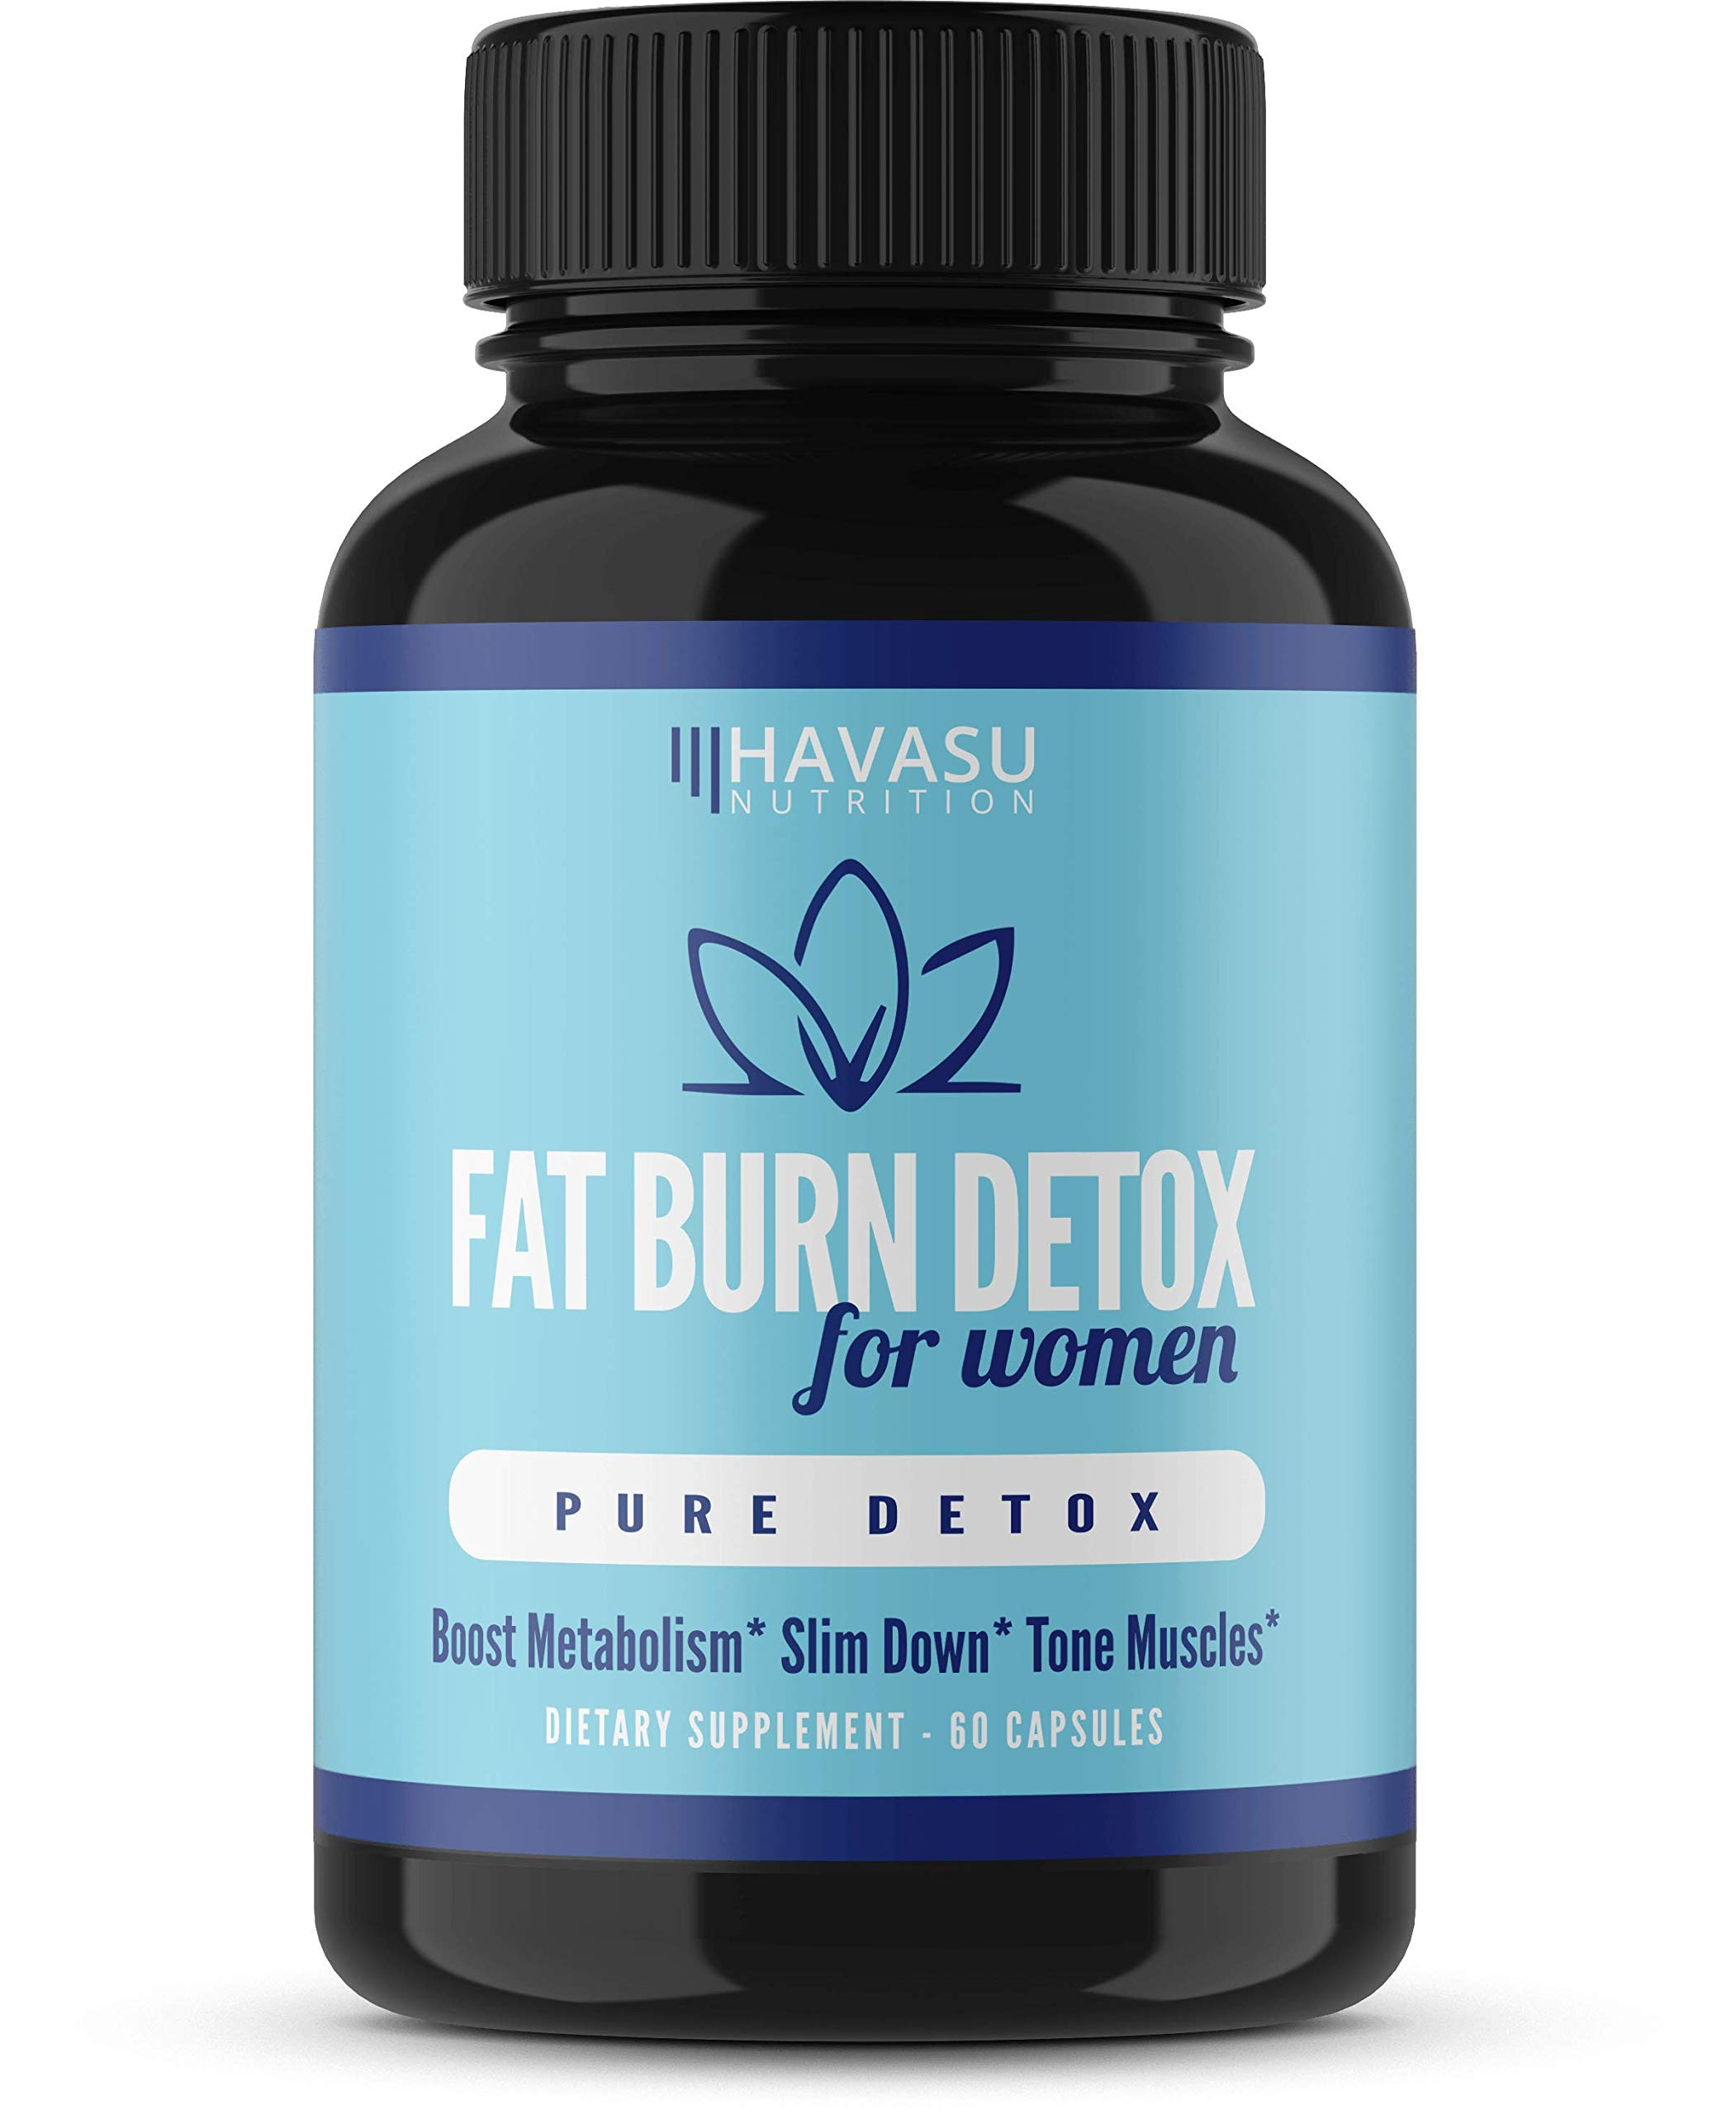 Havasu Nutrition Women's Fat Burner - Womens Keto Fat Burn Detox - Weight Loss Pills Designed for Optimizing Weight Loss & Increasing Energy Levels, Fat Loss, and Muscle Tone, Non-GMO, 60 Capsules